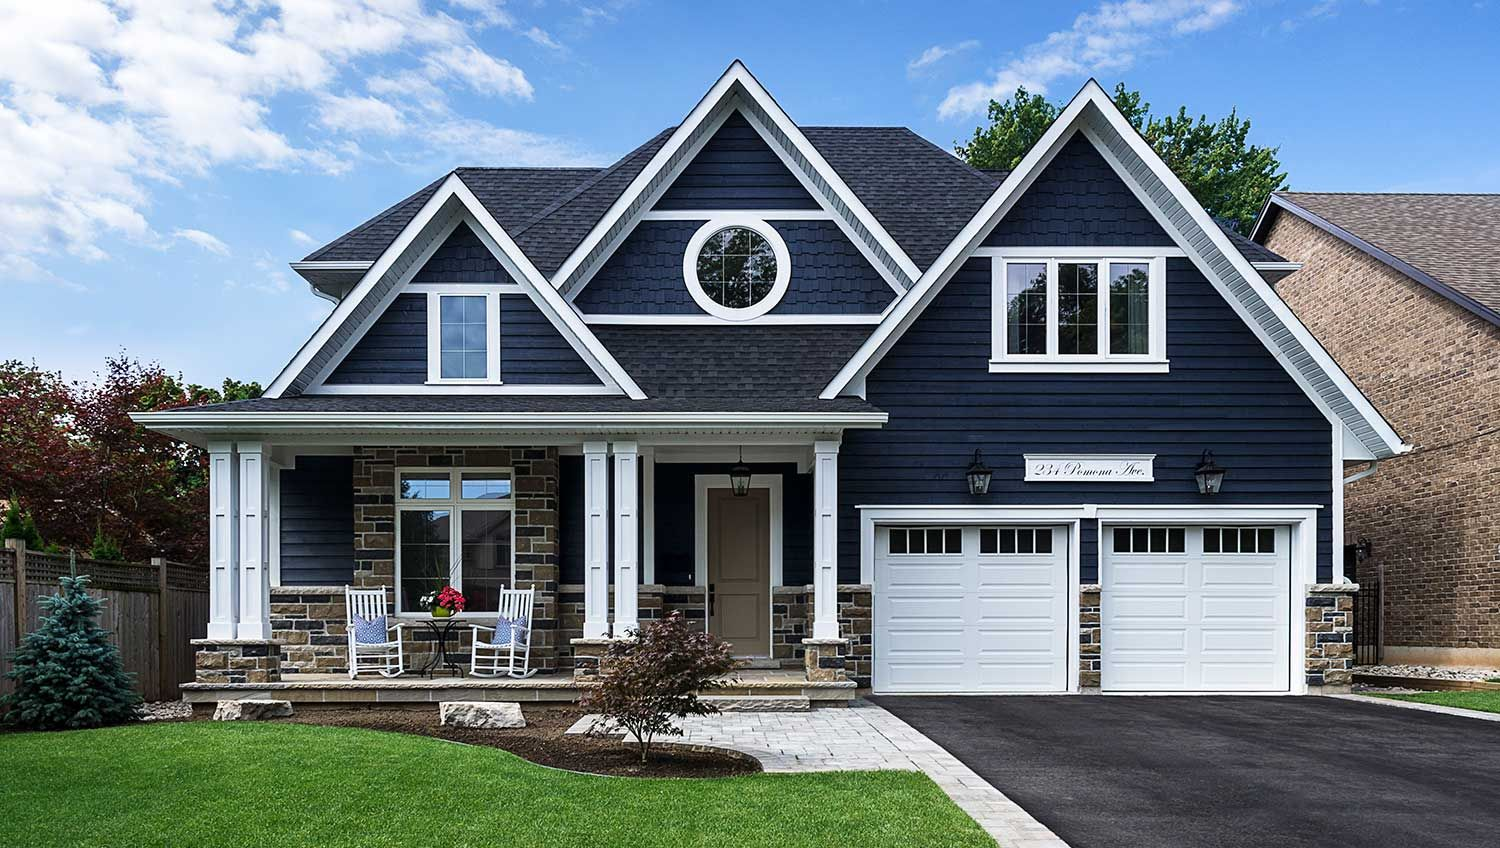 Navy house with white trim floor plans elevations in - Cost to paint exterior trim on house ...